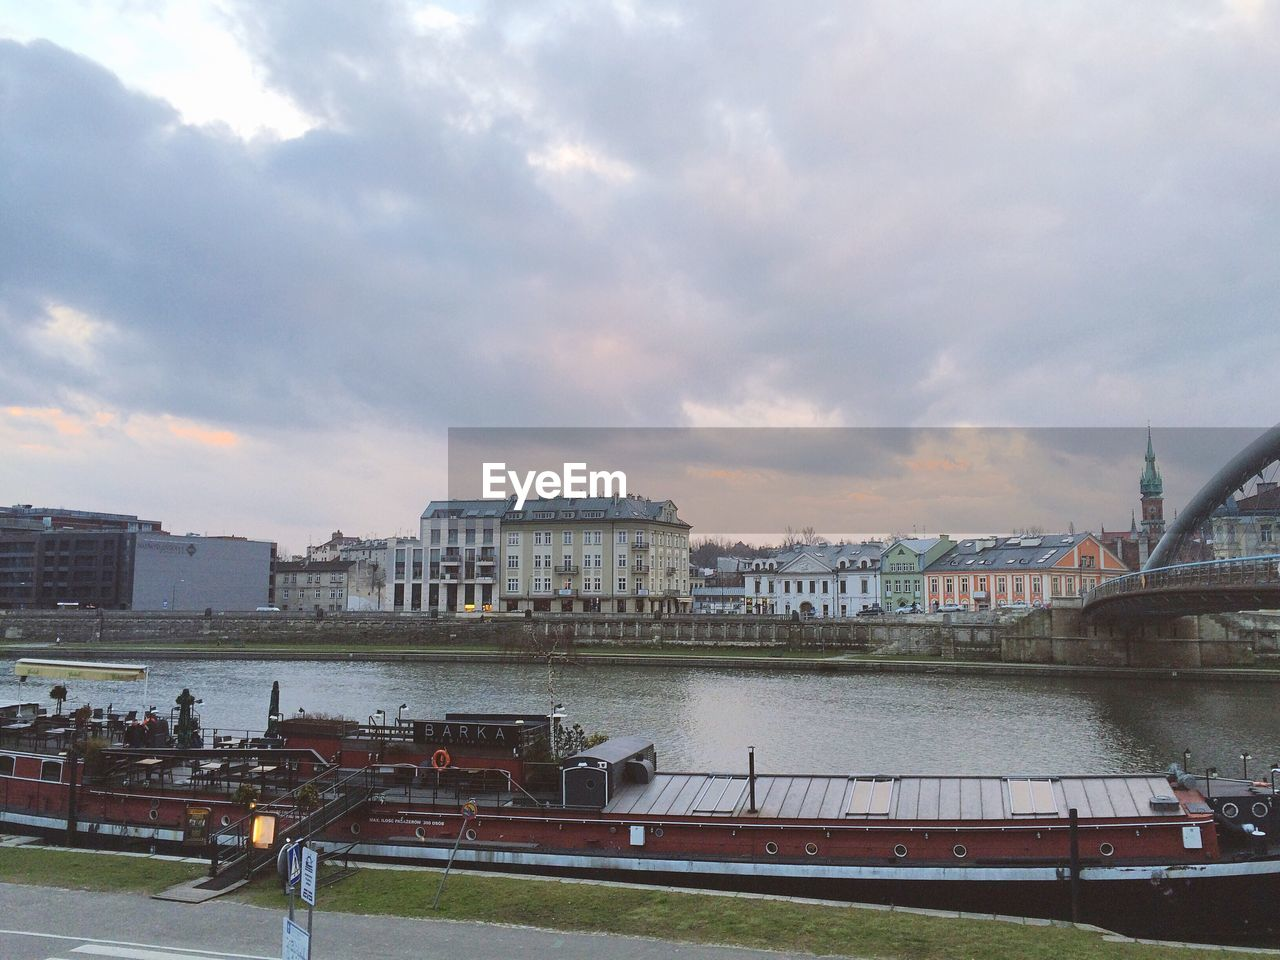 Barge moored on river vistula against cloudy sky